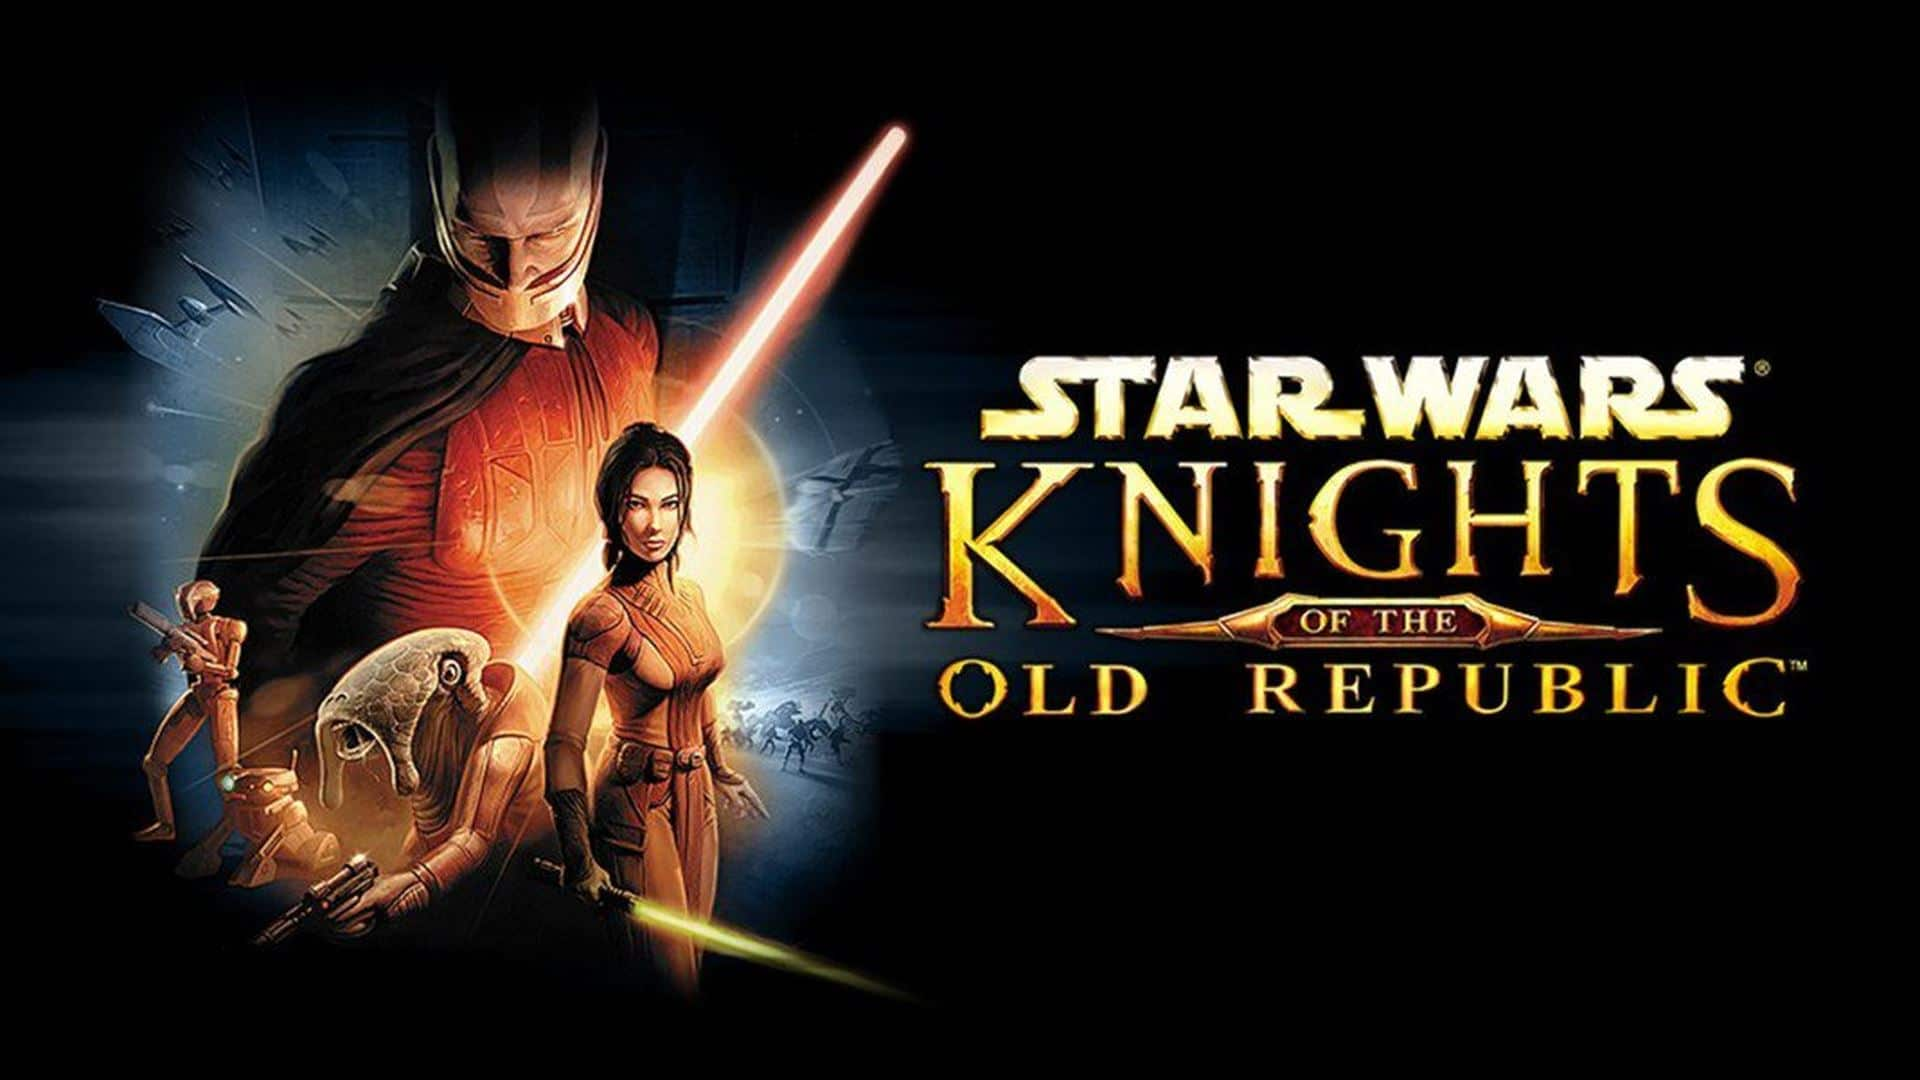 Star Wars: Knights of the Old Republic Cover Art